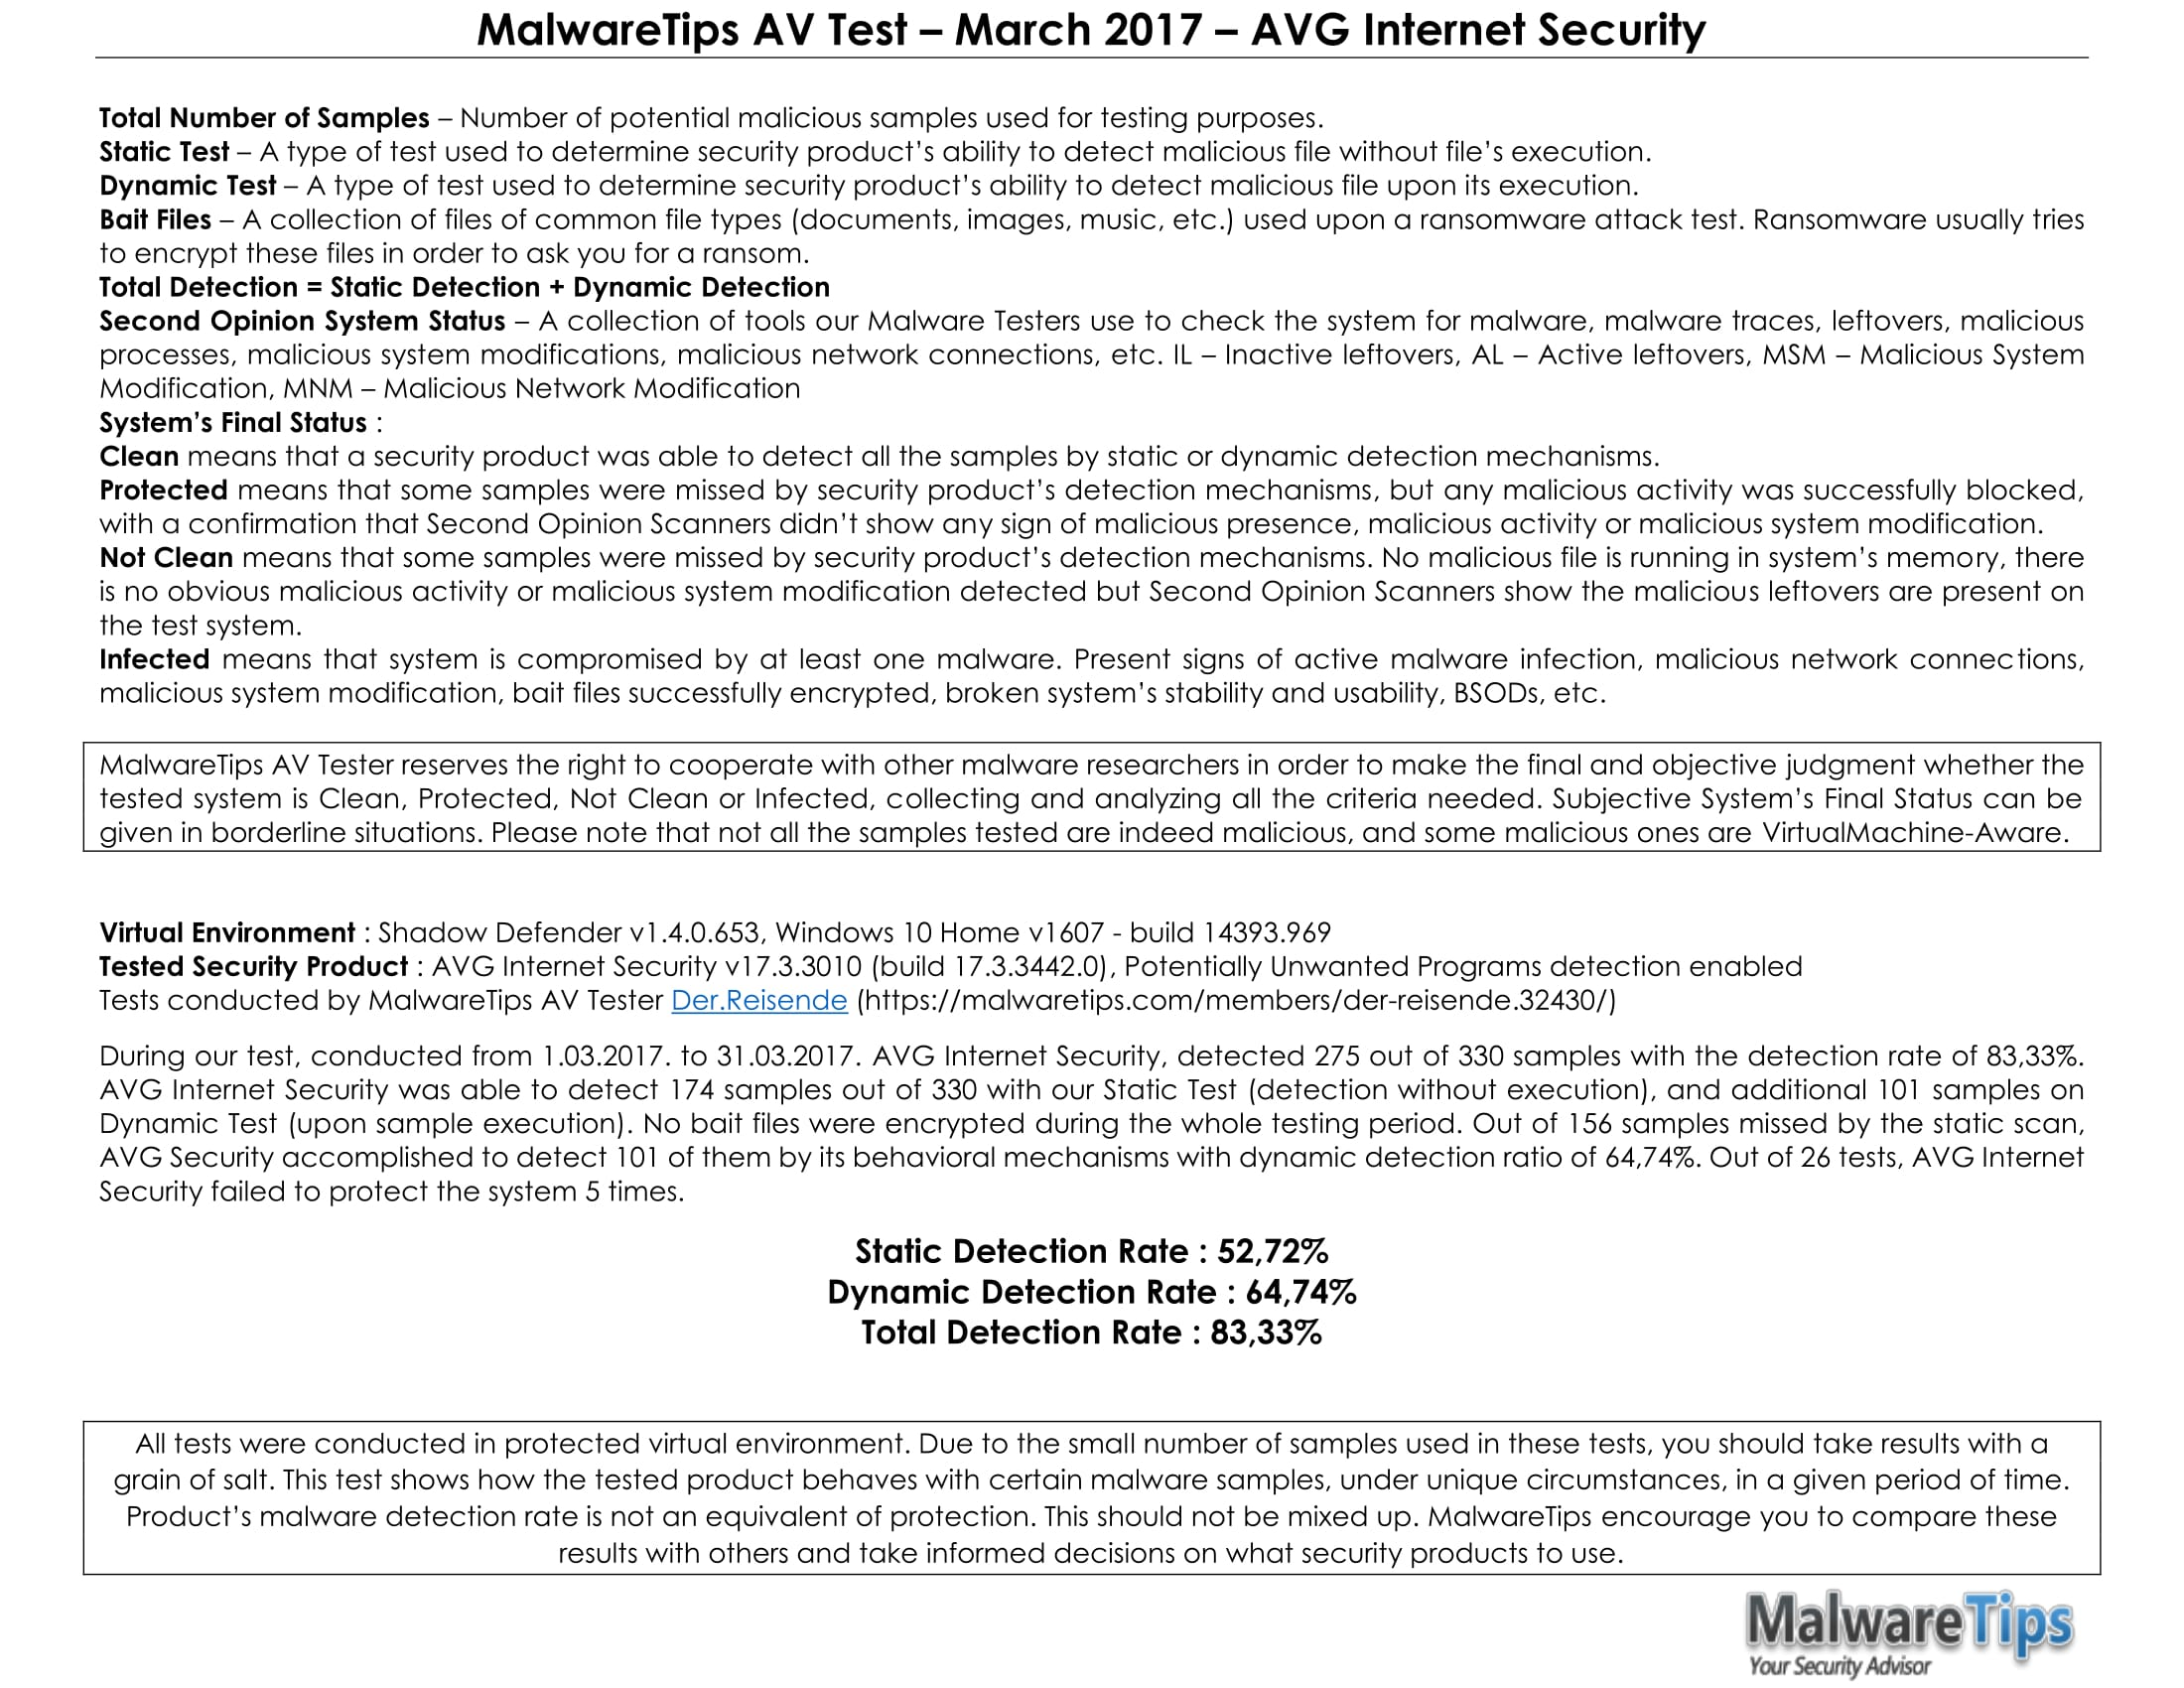 MalwareTips AV Test – March 2017 – AVG Internet Security-2.jpg